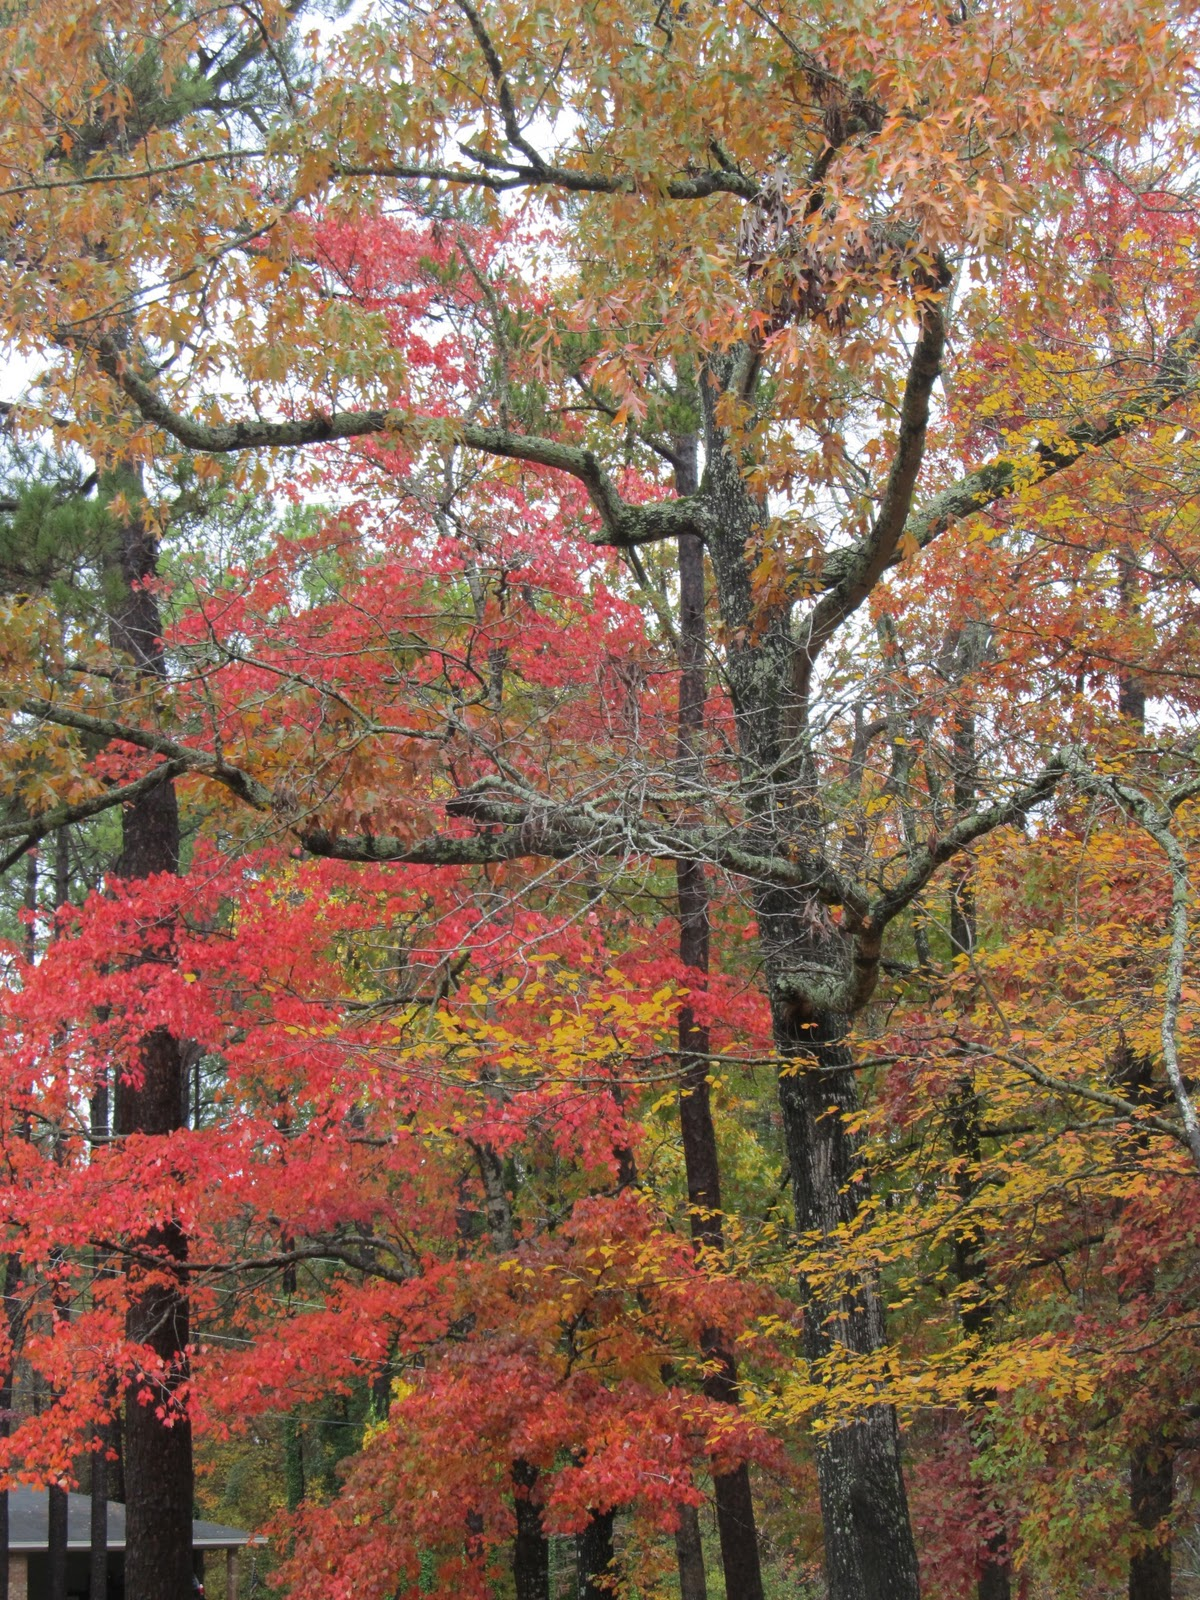 PrunePicker: Pretty Fall Leaves On The Way To Lunch